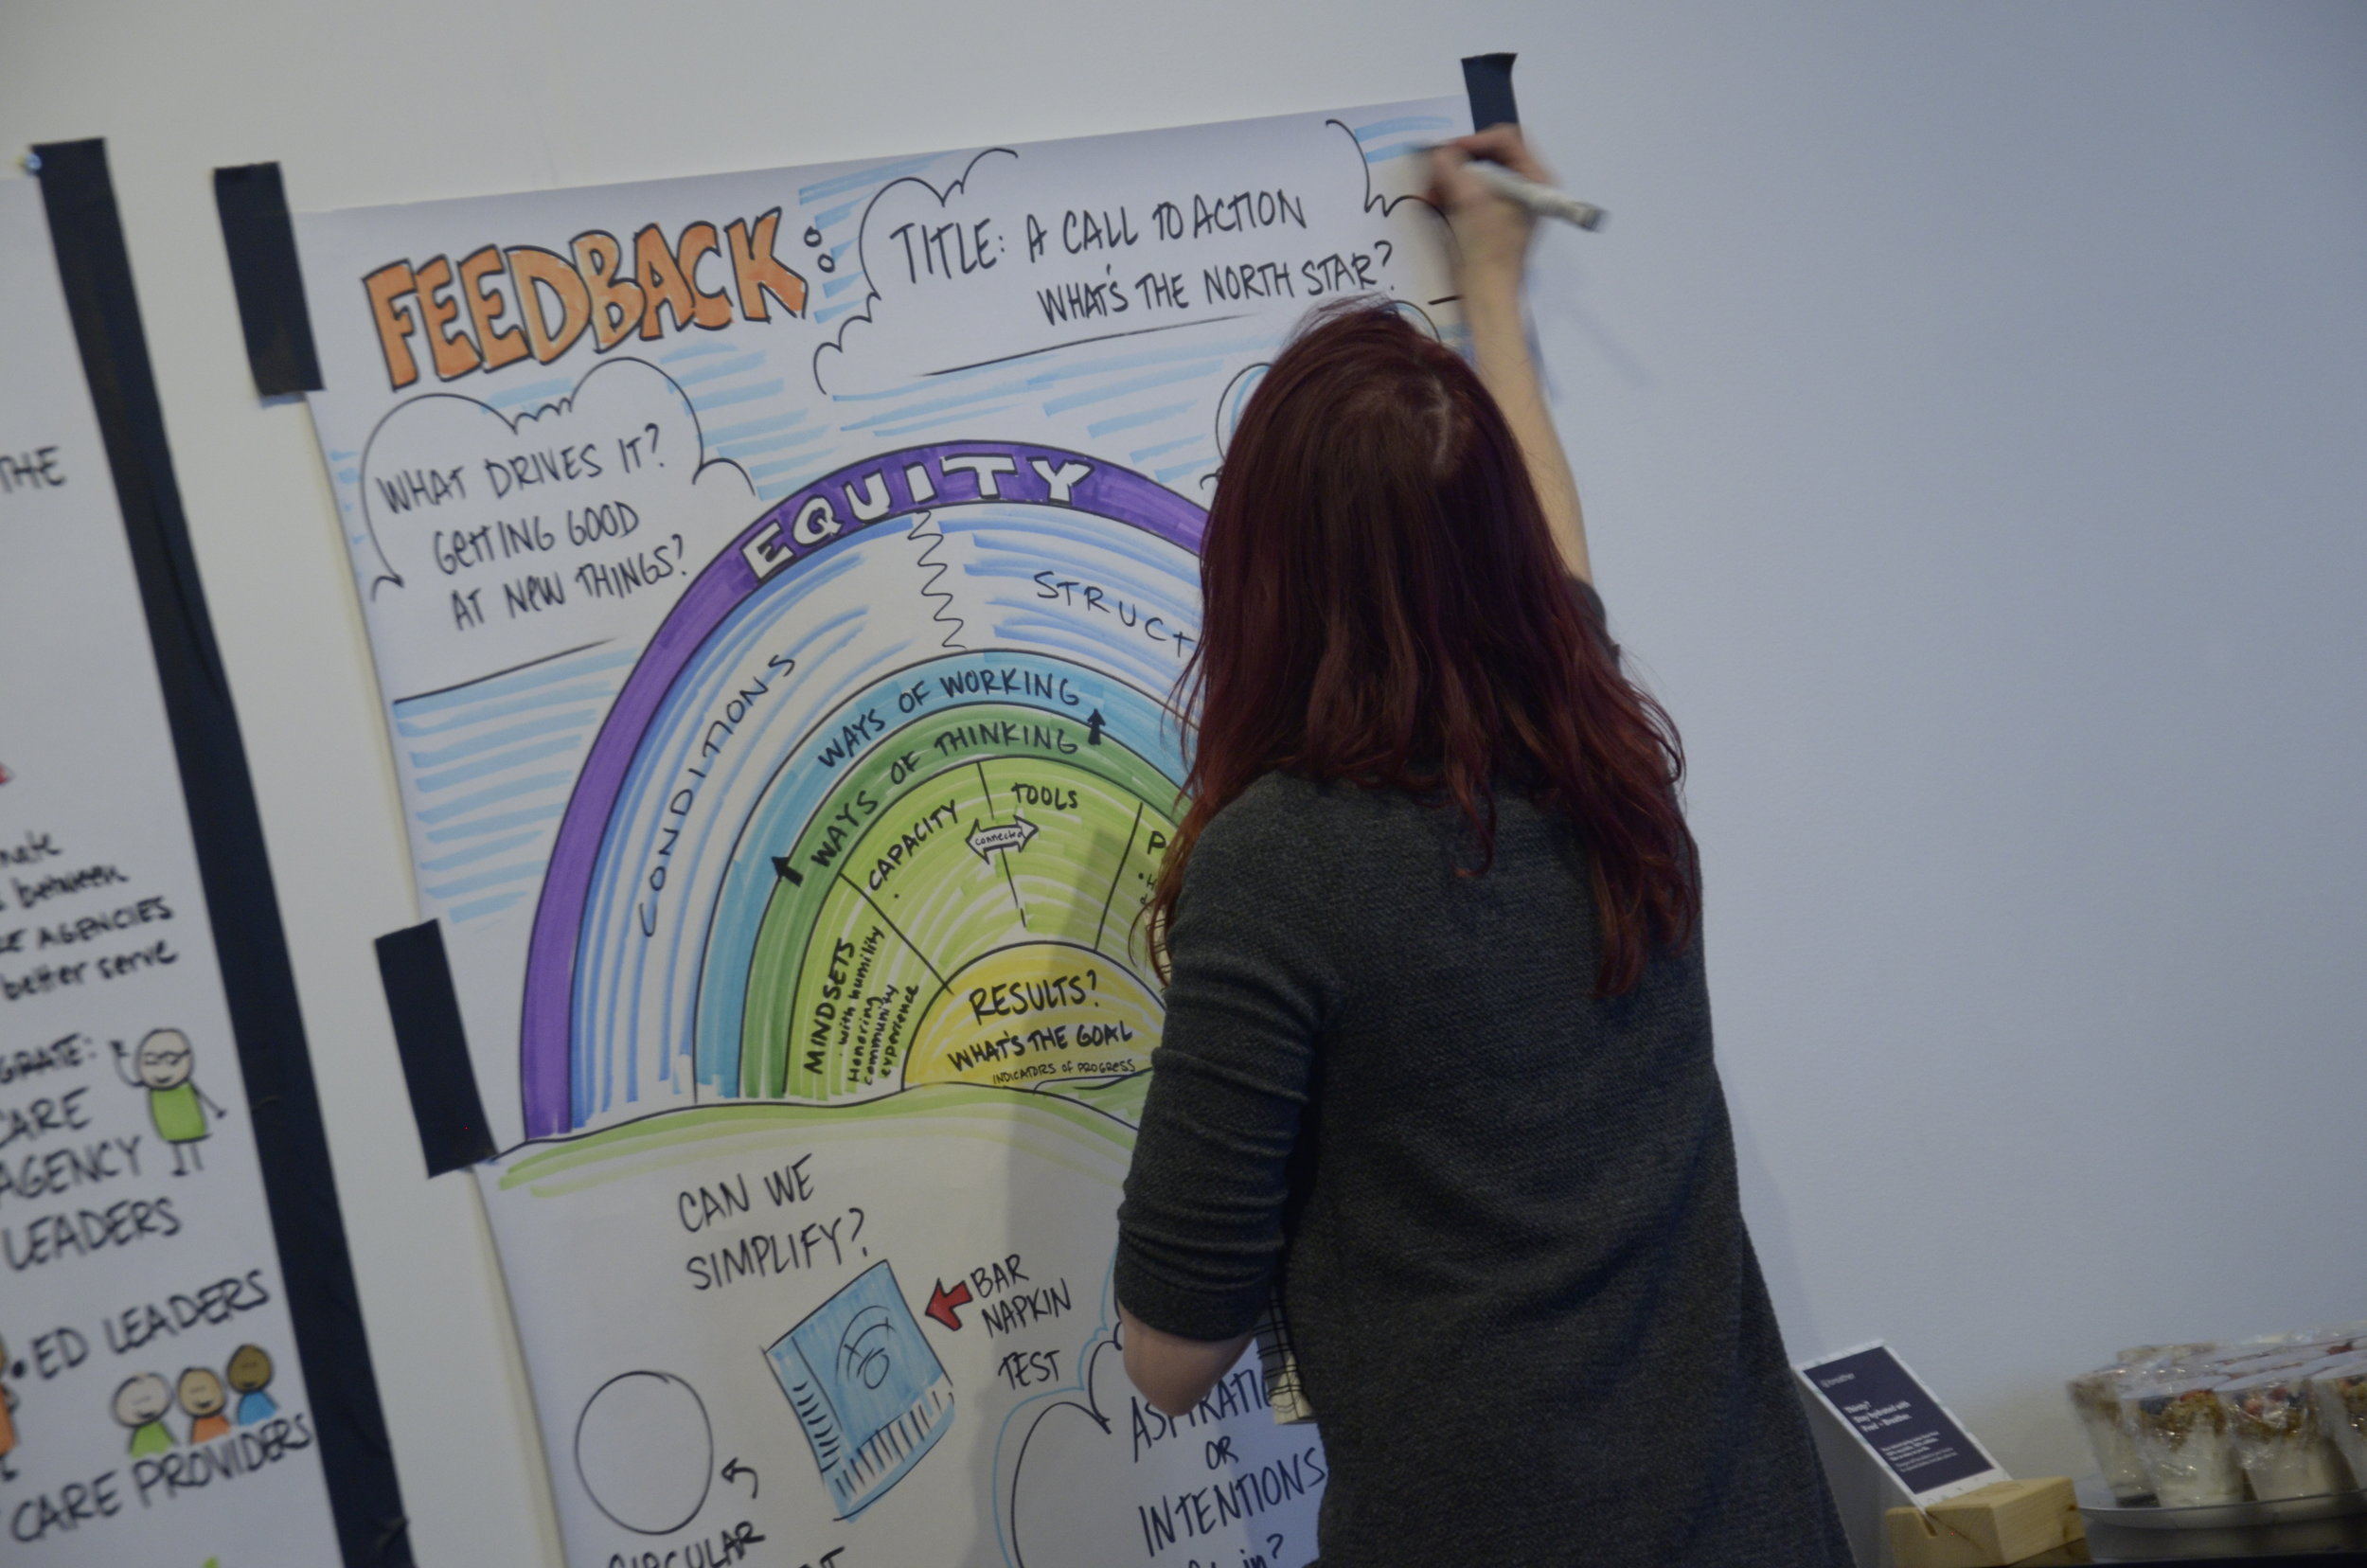 A graphic notetaker draws murals live during the first IDC convening